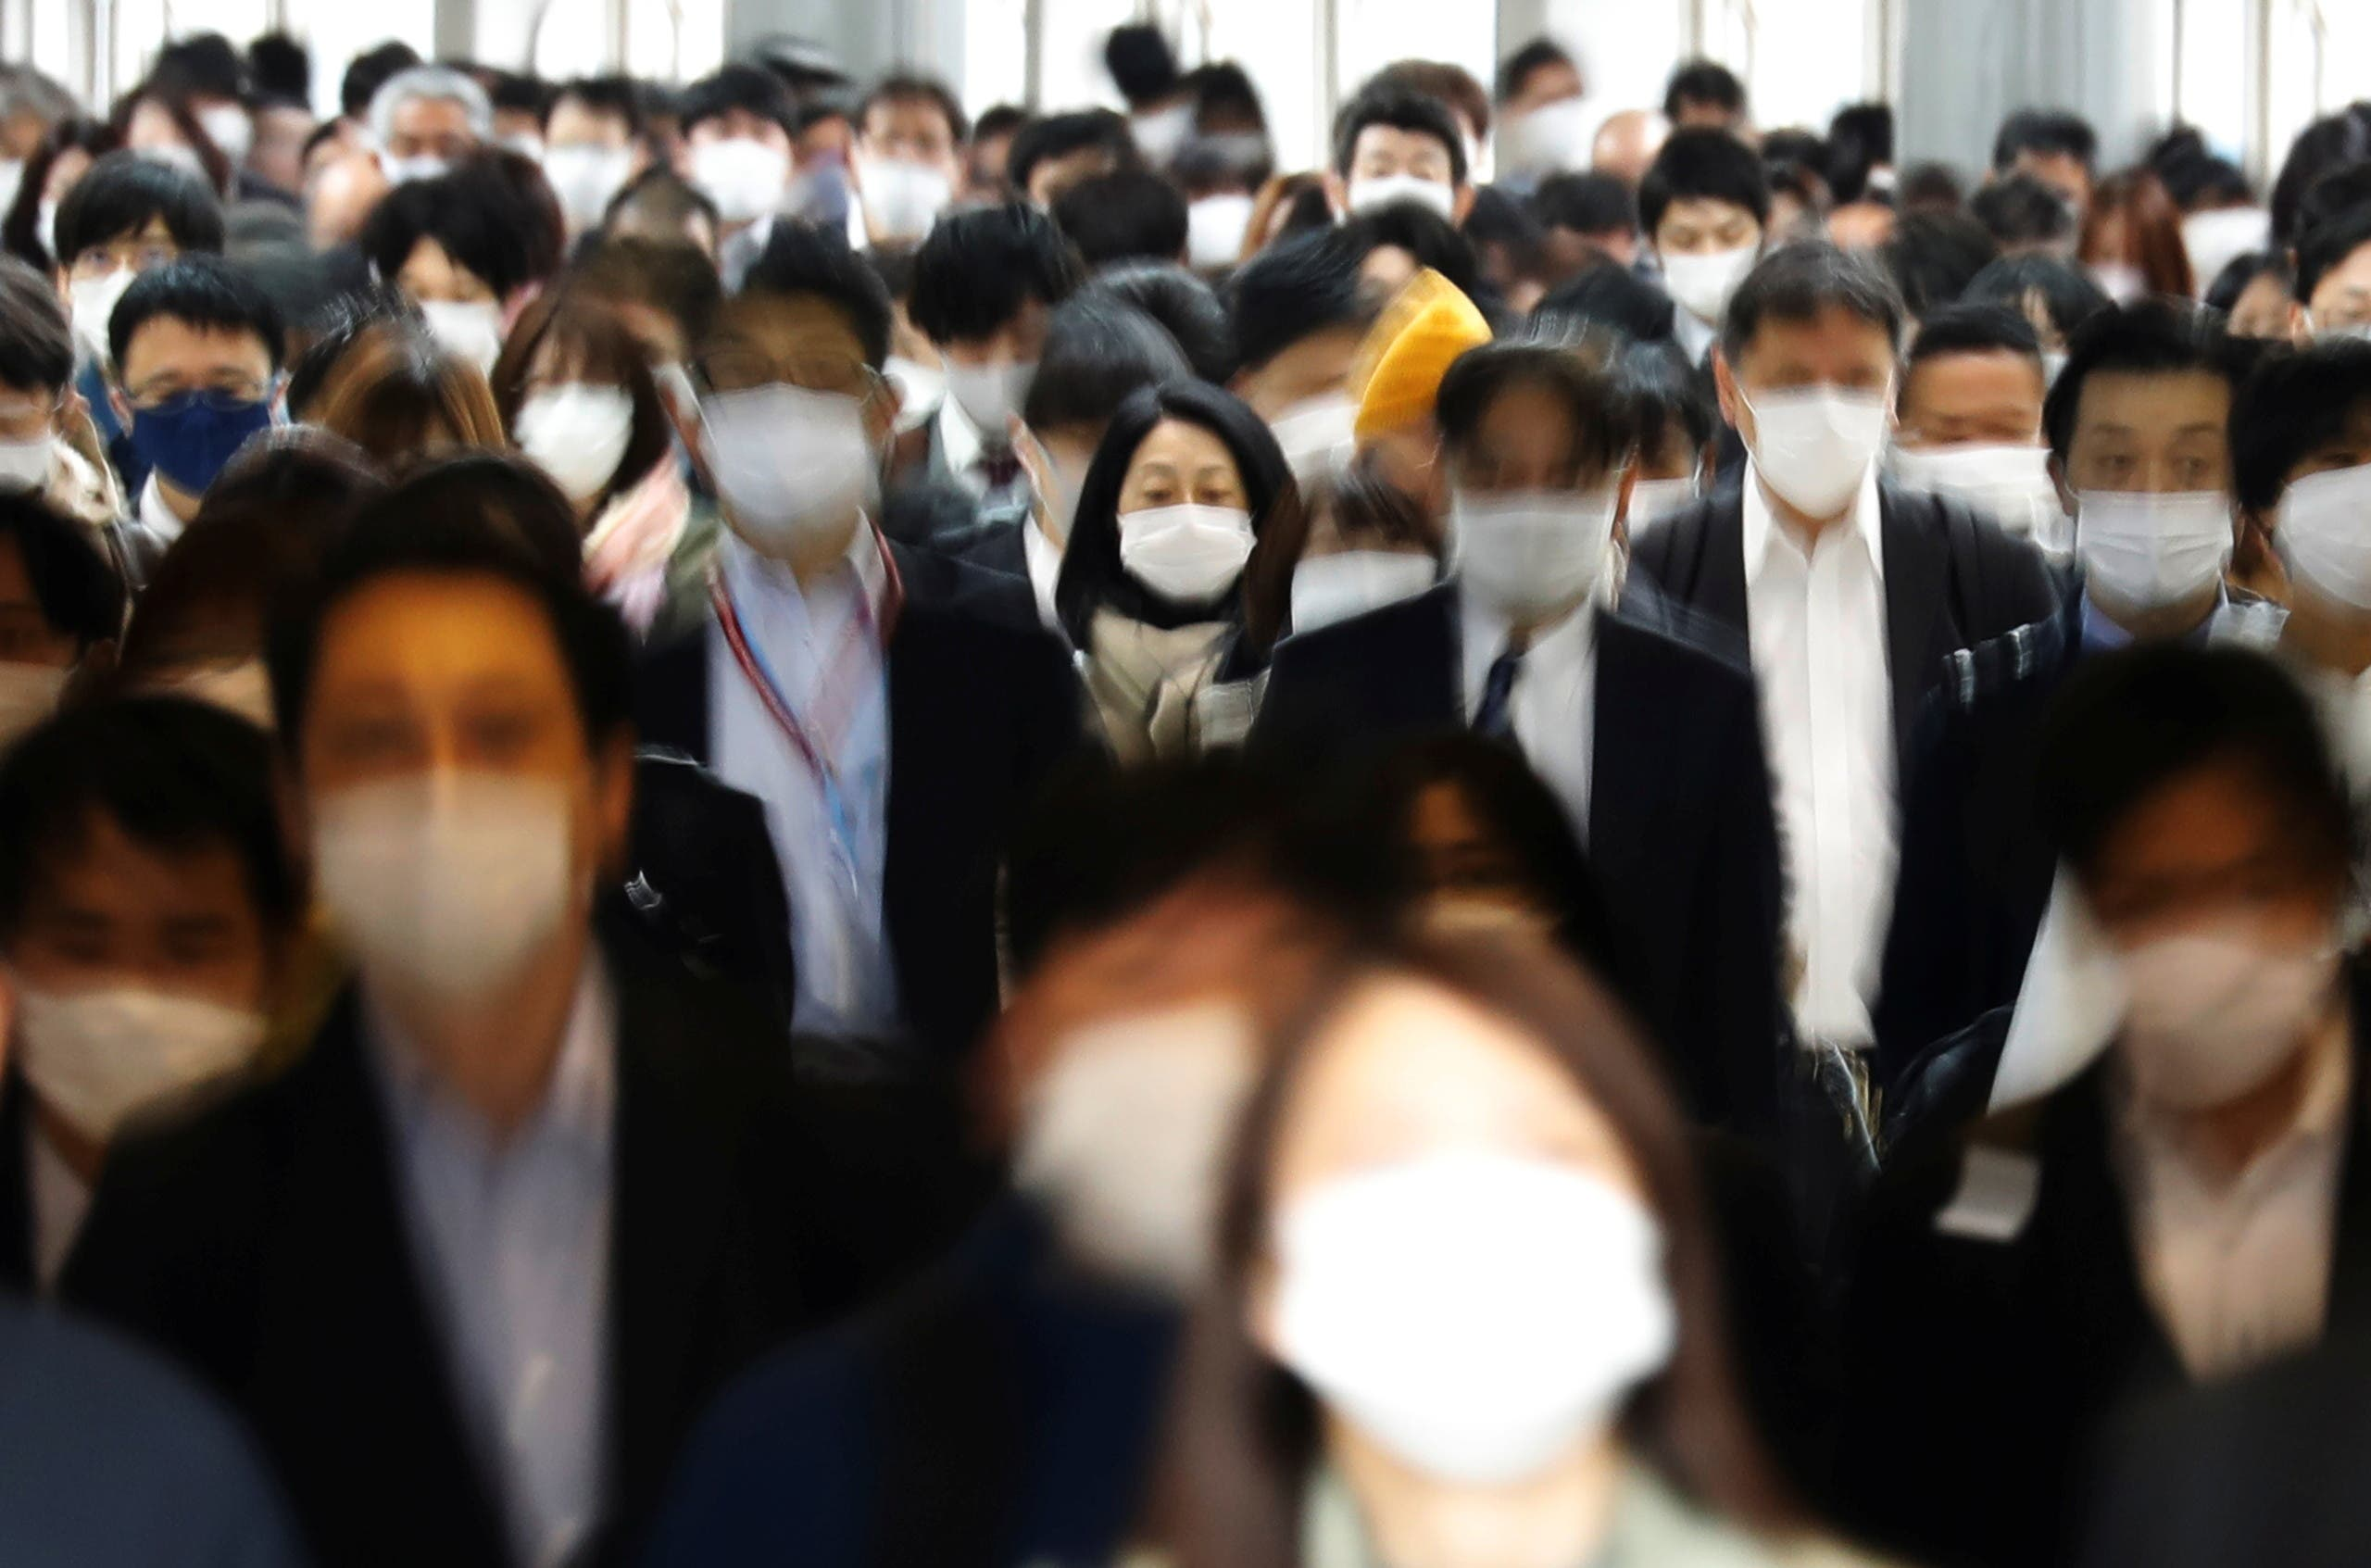 Commuters wearing protective face masks, amid the coronavirus disease (COVID-19) pandemic, make their way in Tokyo, Japan, April 6, 2021. (File photo: Reuters)